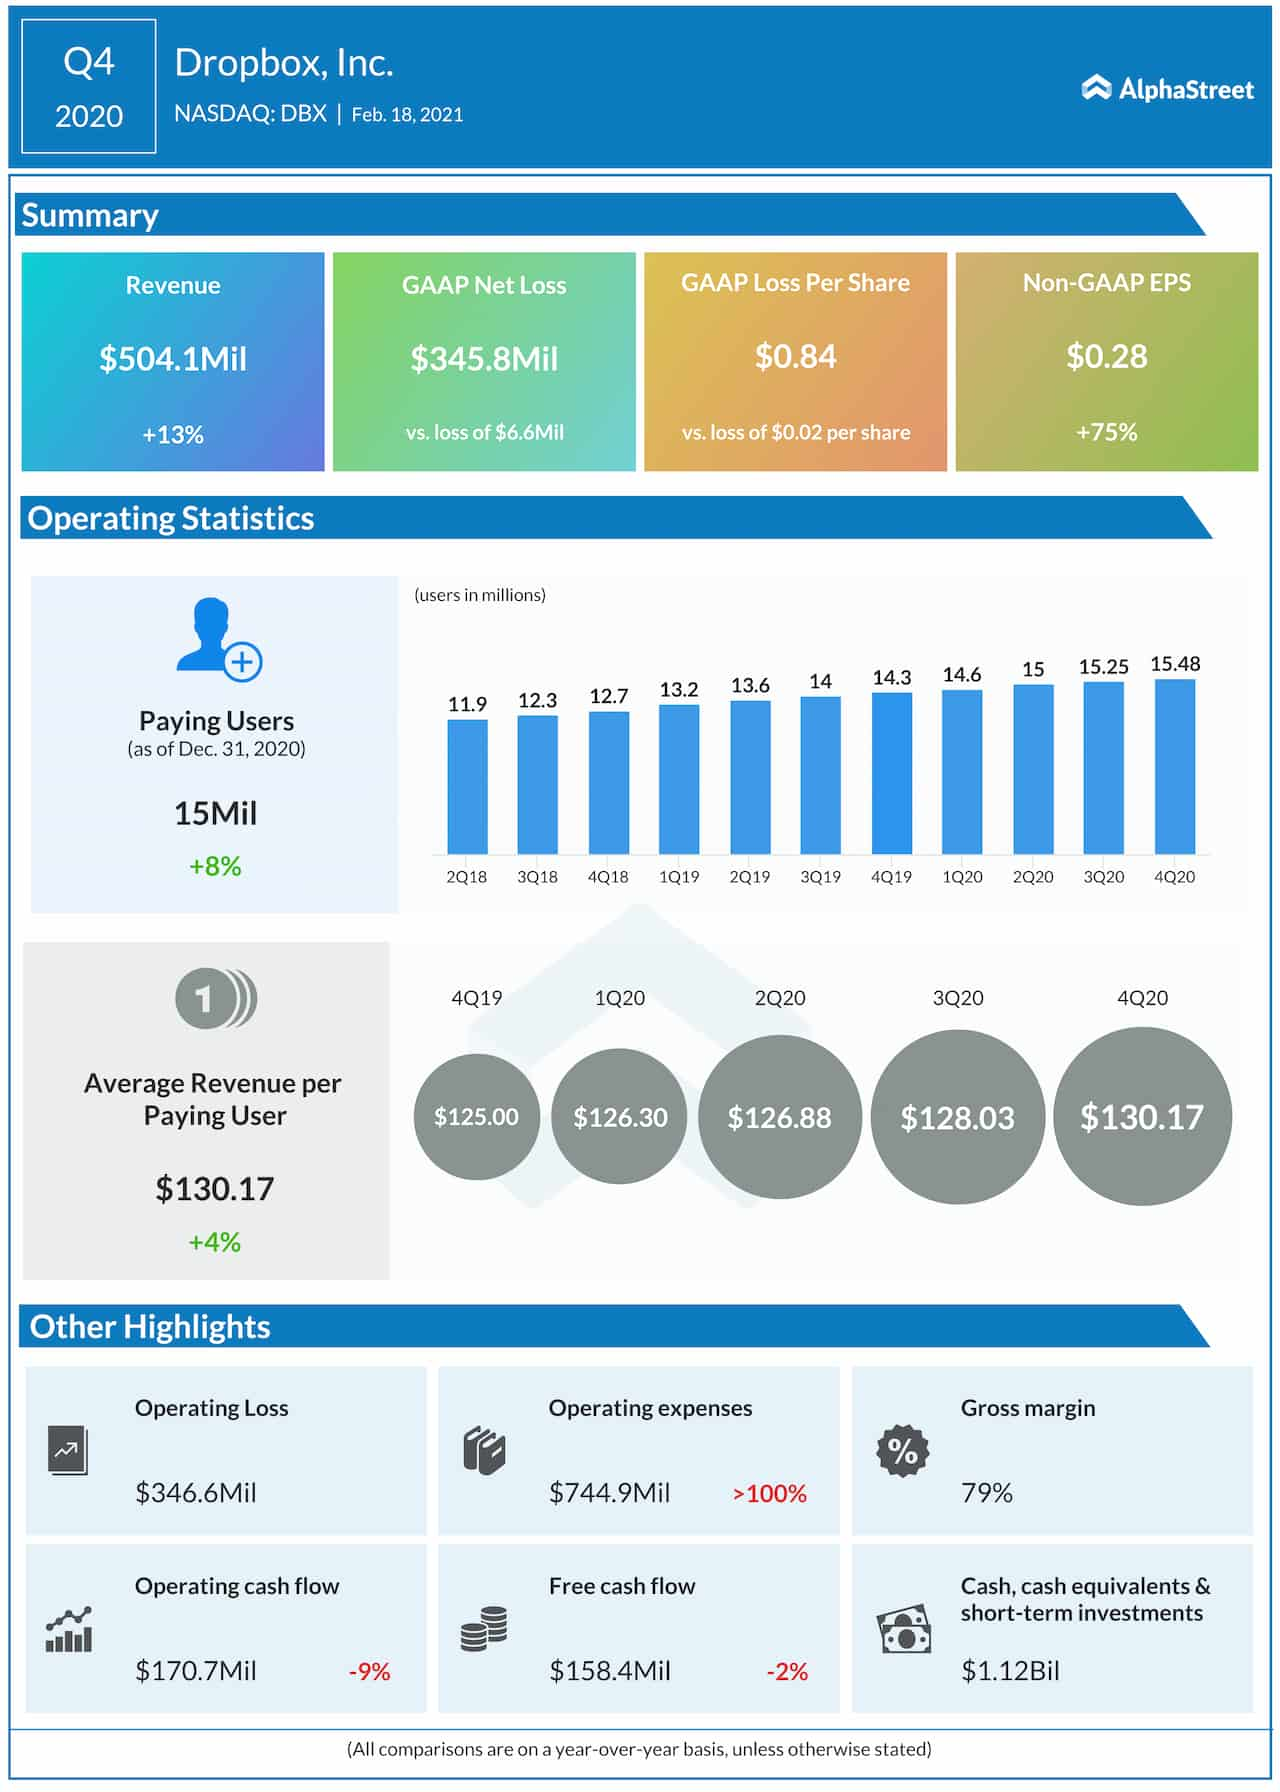 Dropbox Q4 2020 earnings infographic